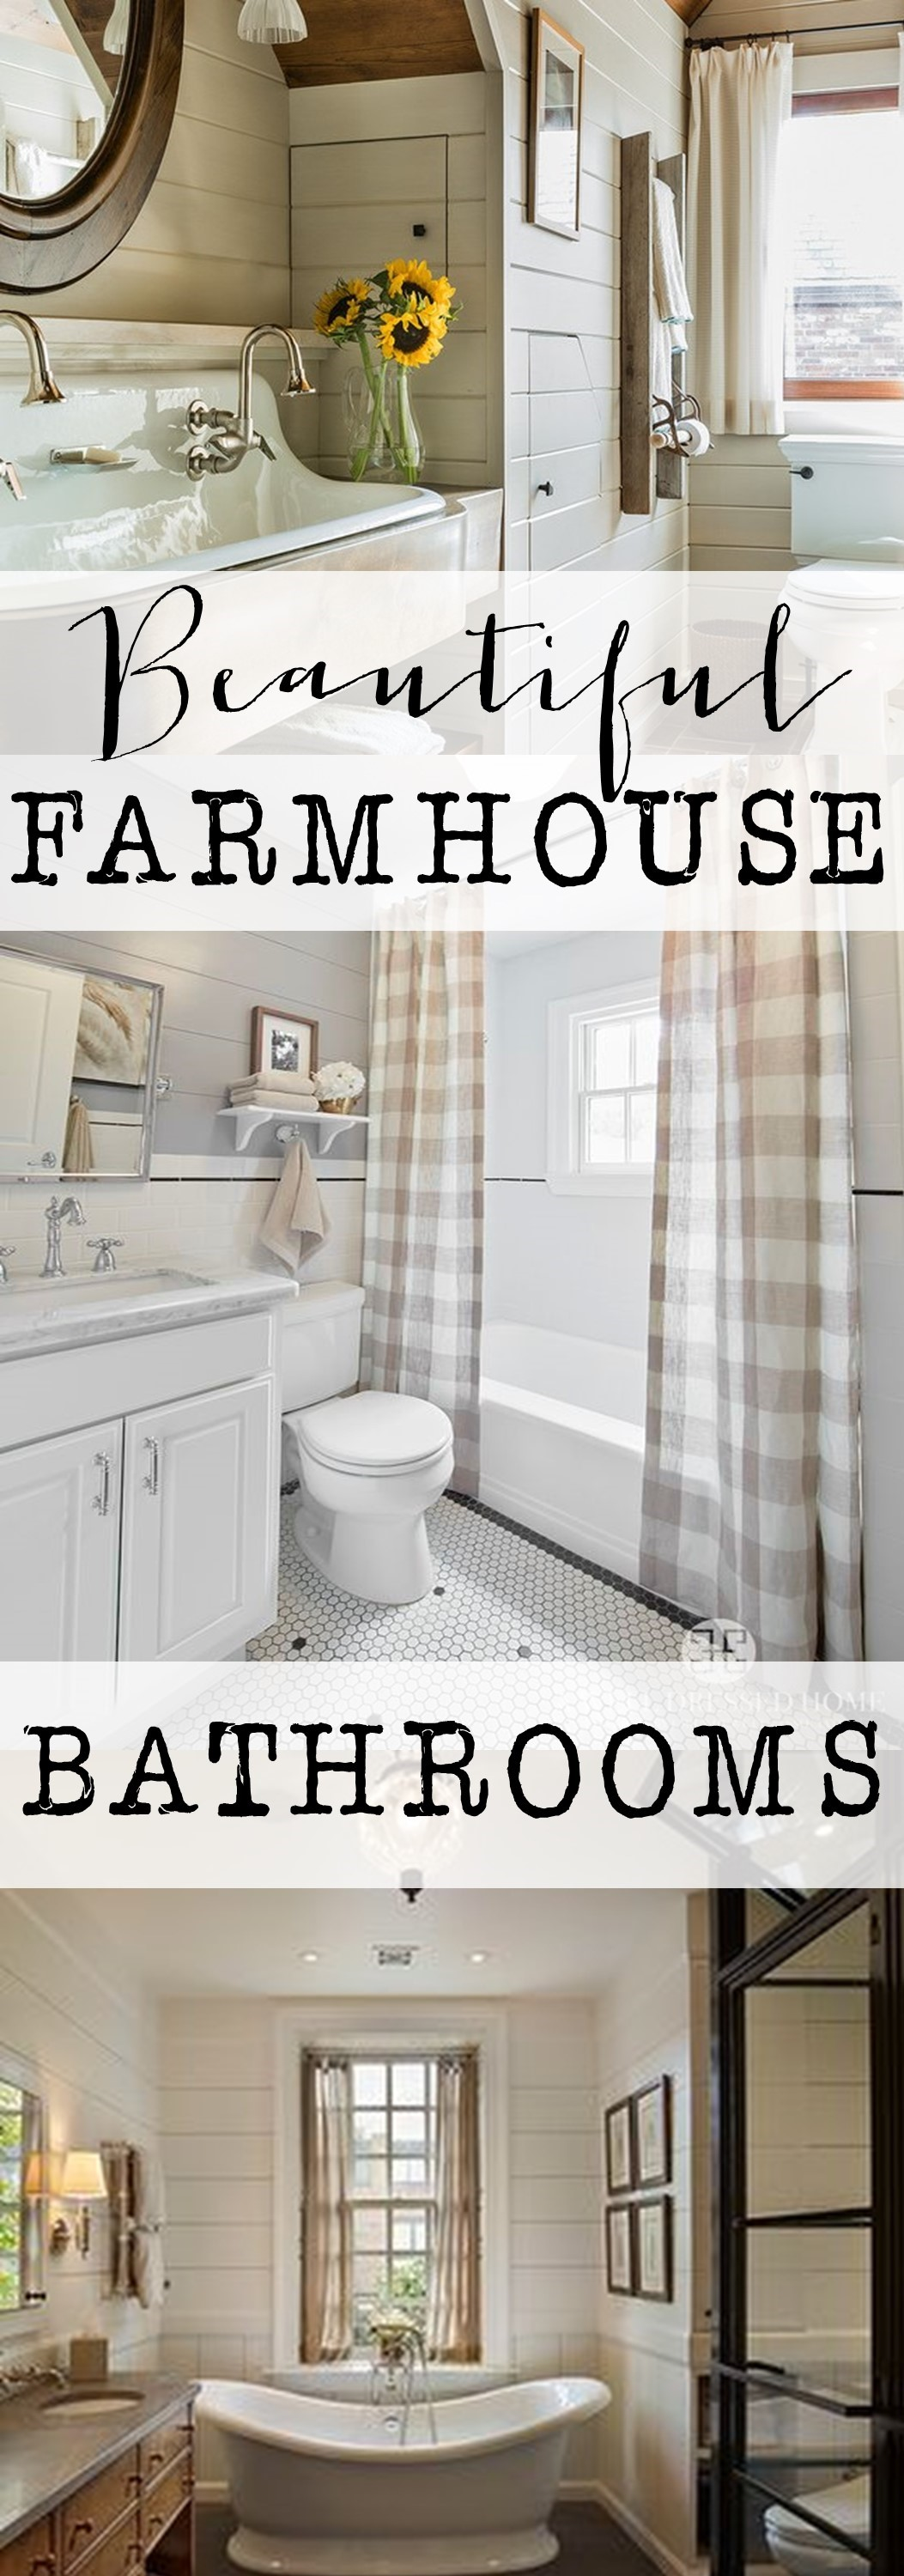 Top Farmhouse Bathrooms - House of Hargrove CO02